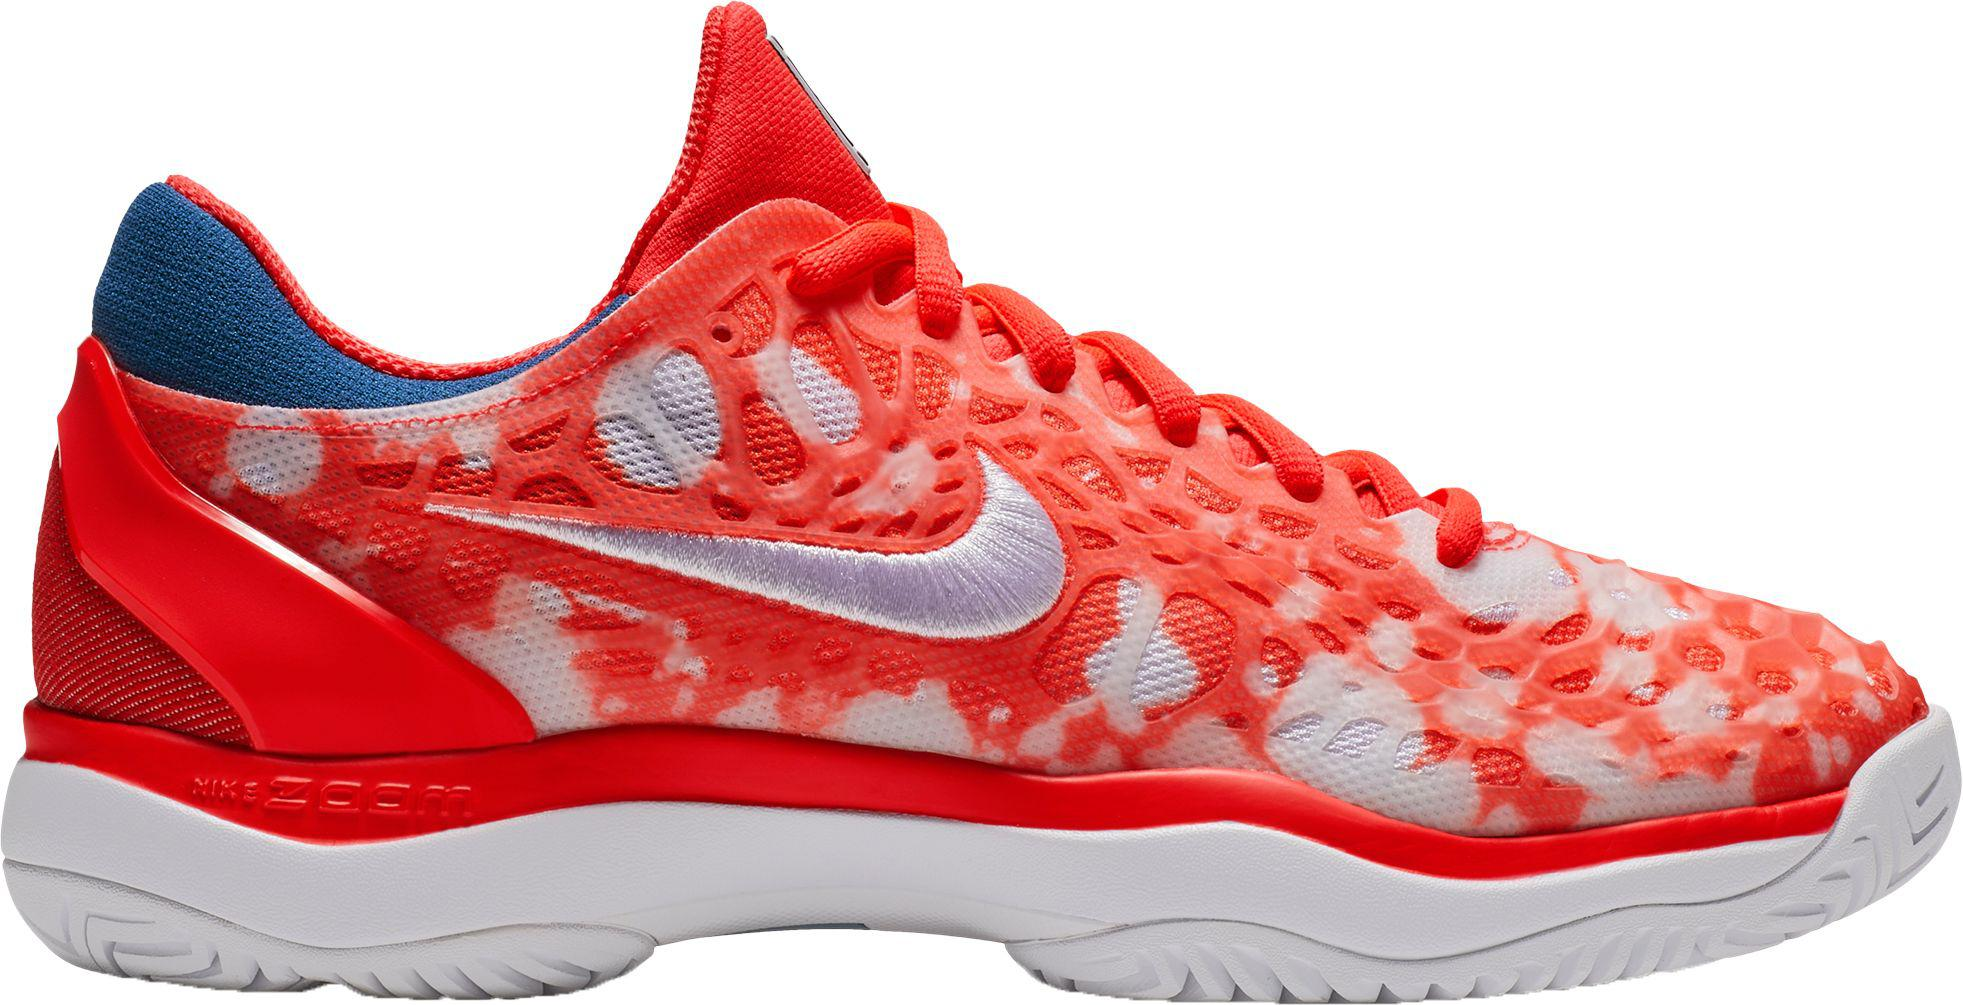 578ec1d174f0b Lyst - Nike Court Air Zoom Cage 3 Premium Tennis Shoe in Red